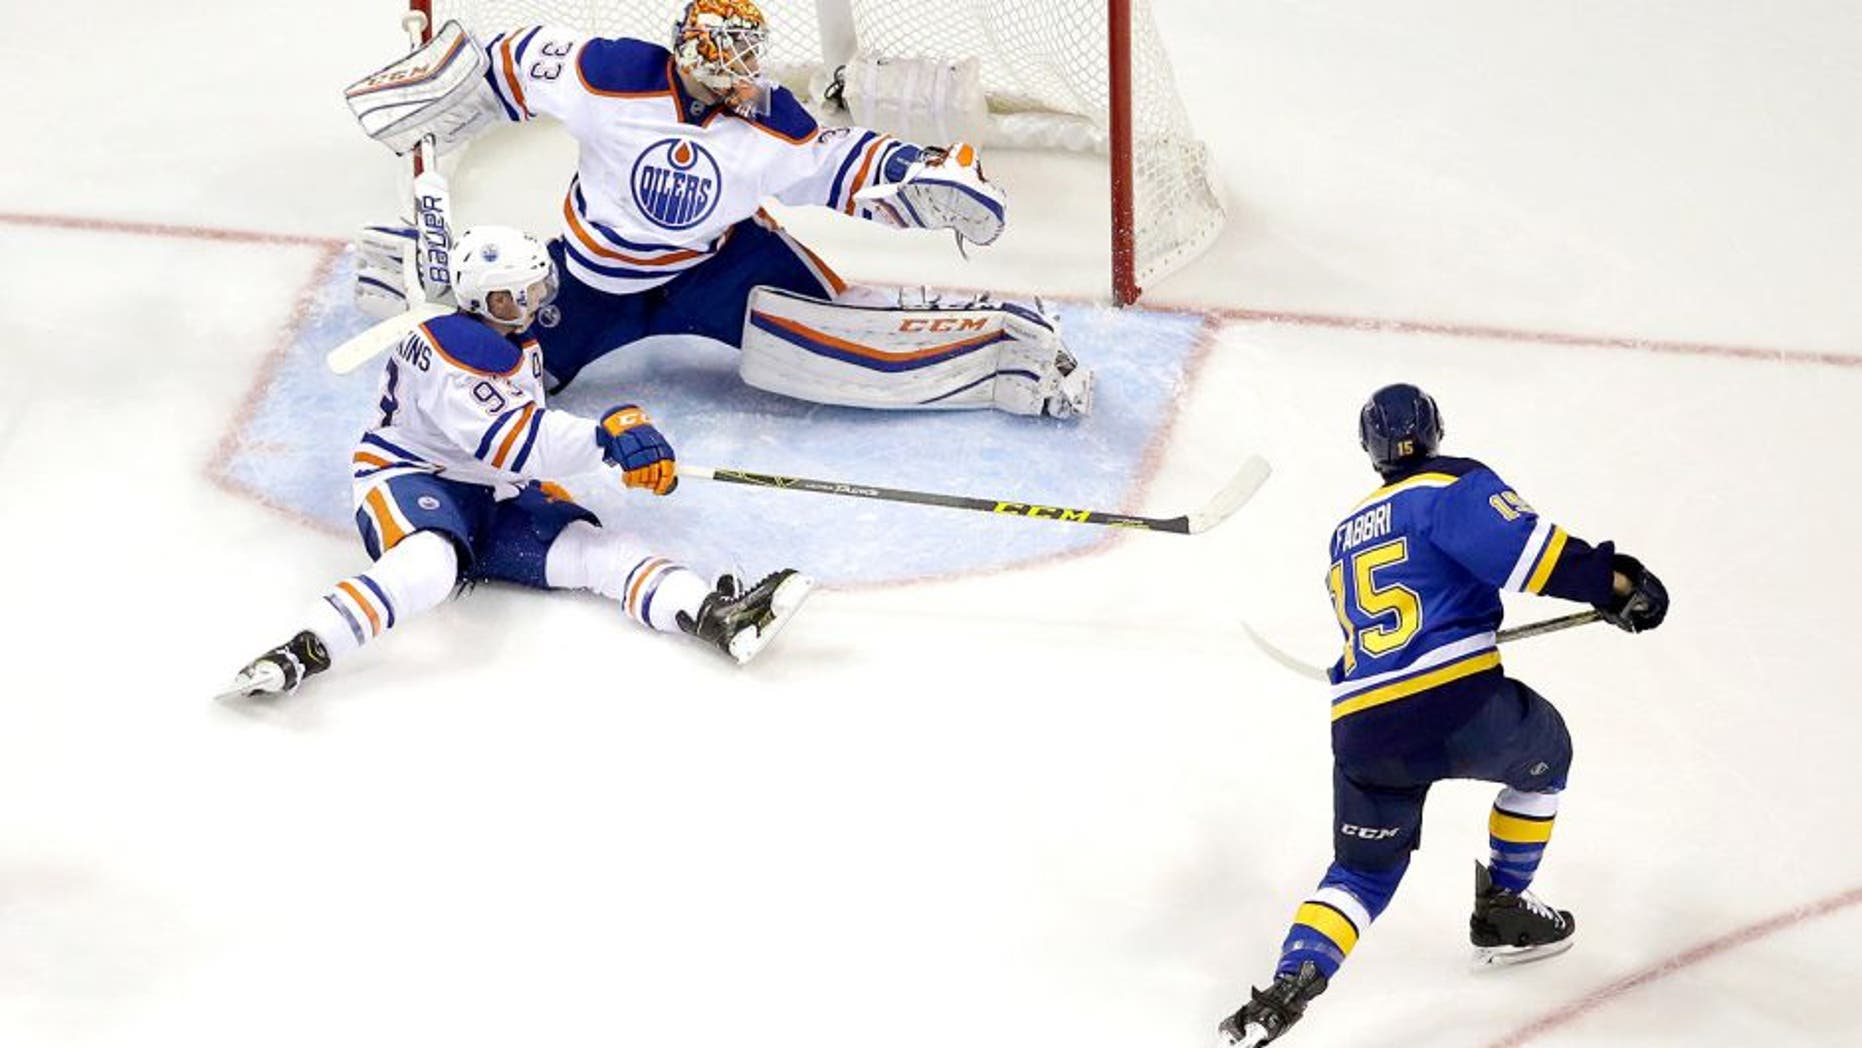 St. Louis Blues' Robby Fabbri, right, scores past Edmonton Oilers goalie Cam Talbot and Ryan Nugent-Hopkins, bottom left, during the third period of an NHL hockey game Thursday, Oct. 8, 2015, in St. Louis. The Blues won 3-1. (AP Photo/Jeff Roberson)